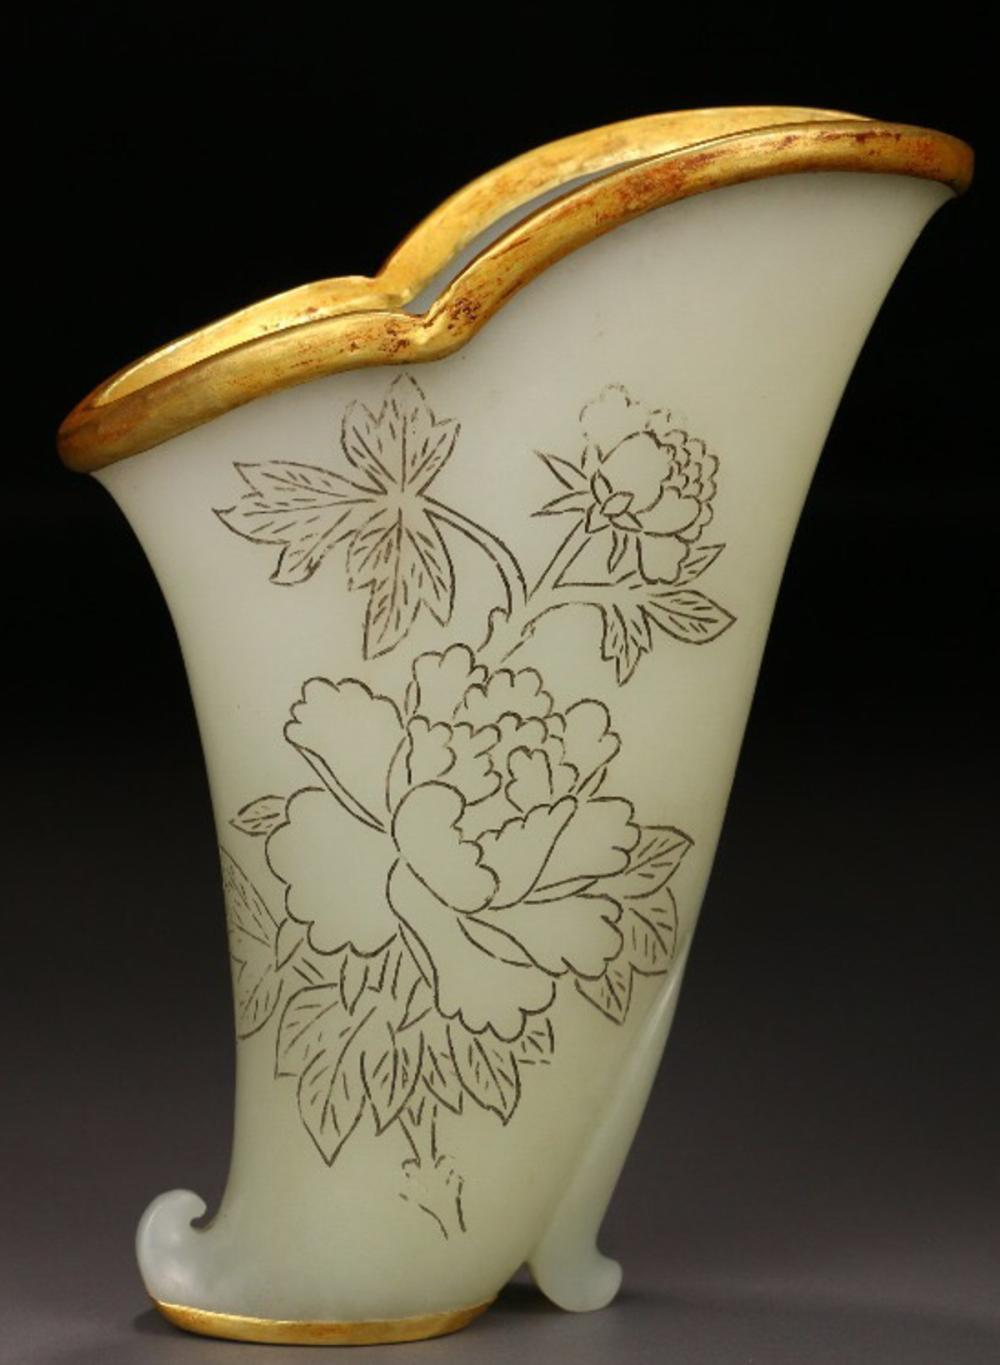 A HETIAN JADE WITH GOLD FLOWER & POETRY CARVED VASE